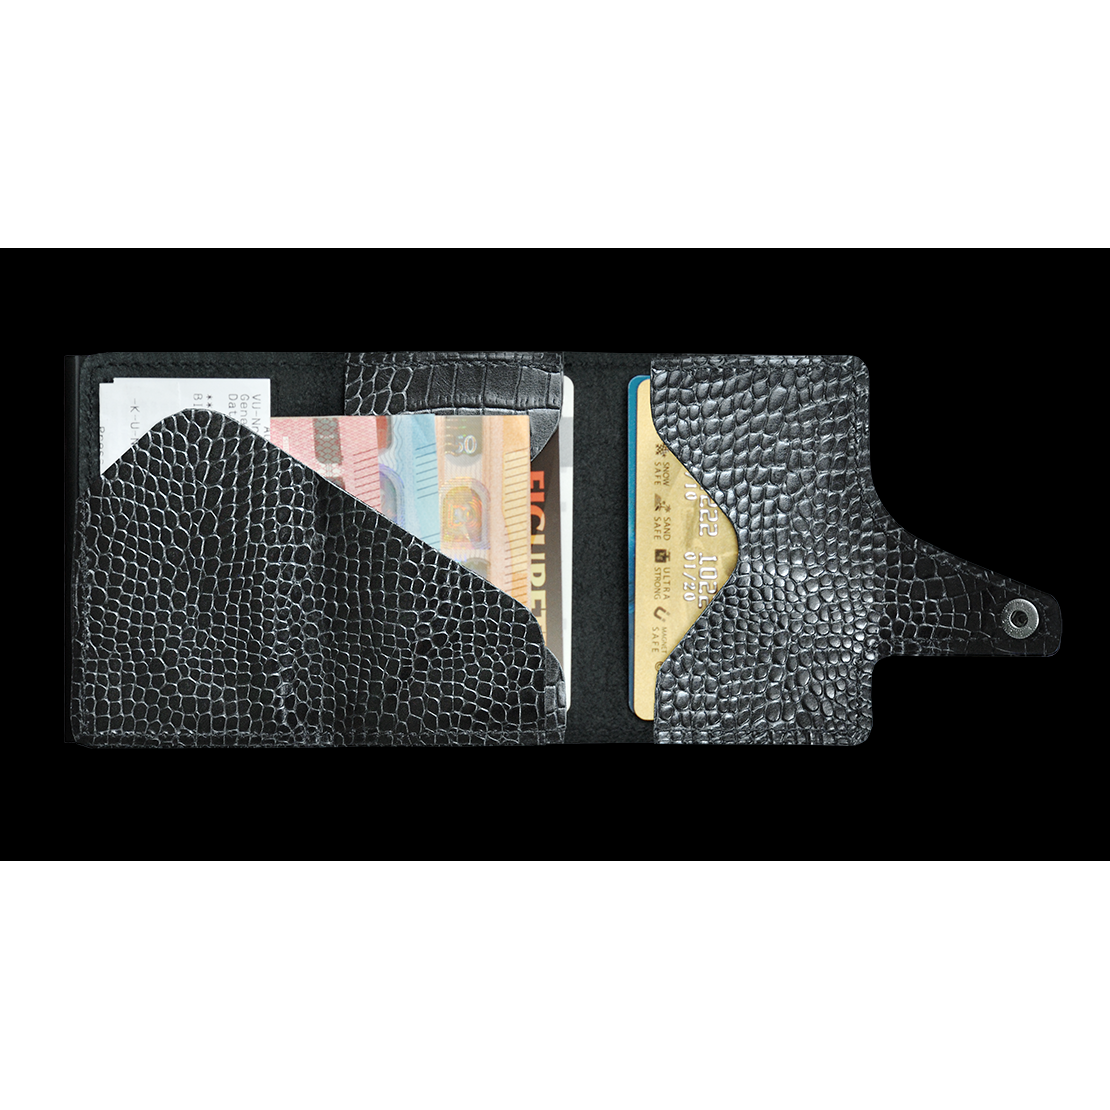 TRU VIRTU Click n Slide Wallet - Croco Black